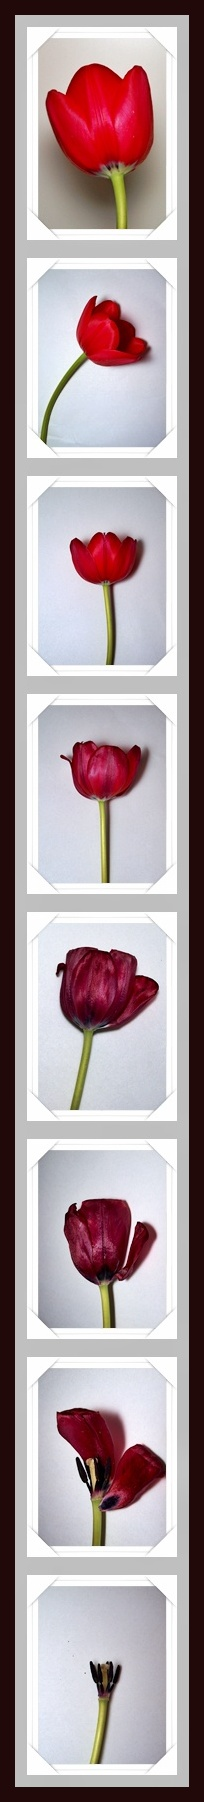 My tulip from time to time.